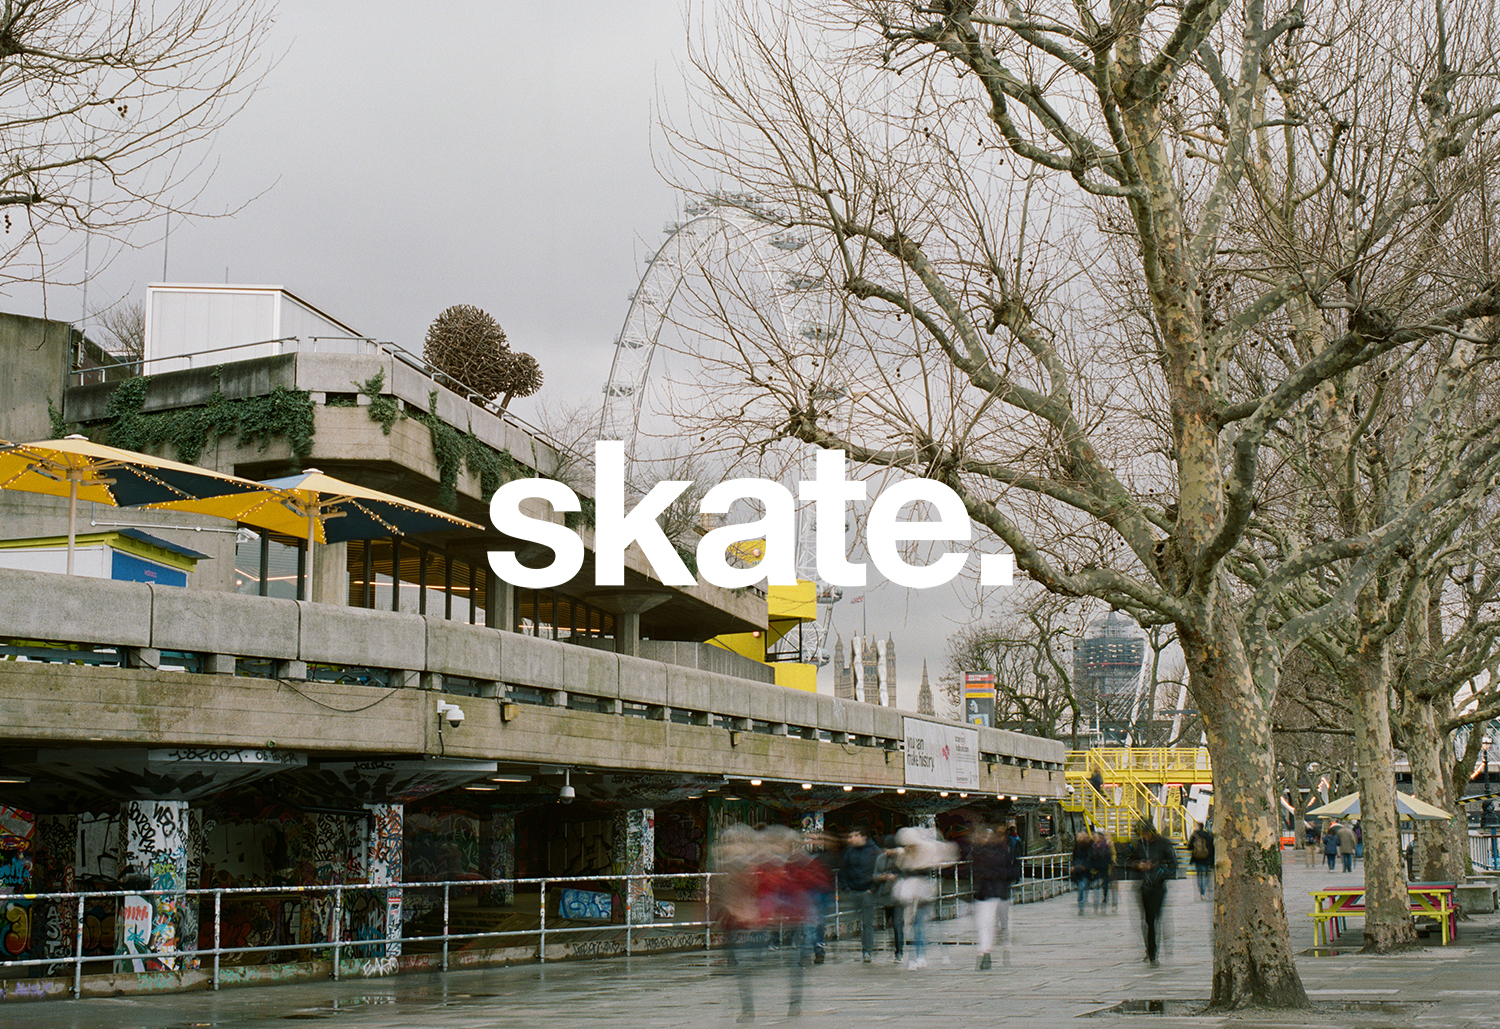 size?selects – Skate